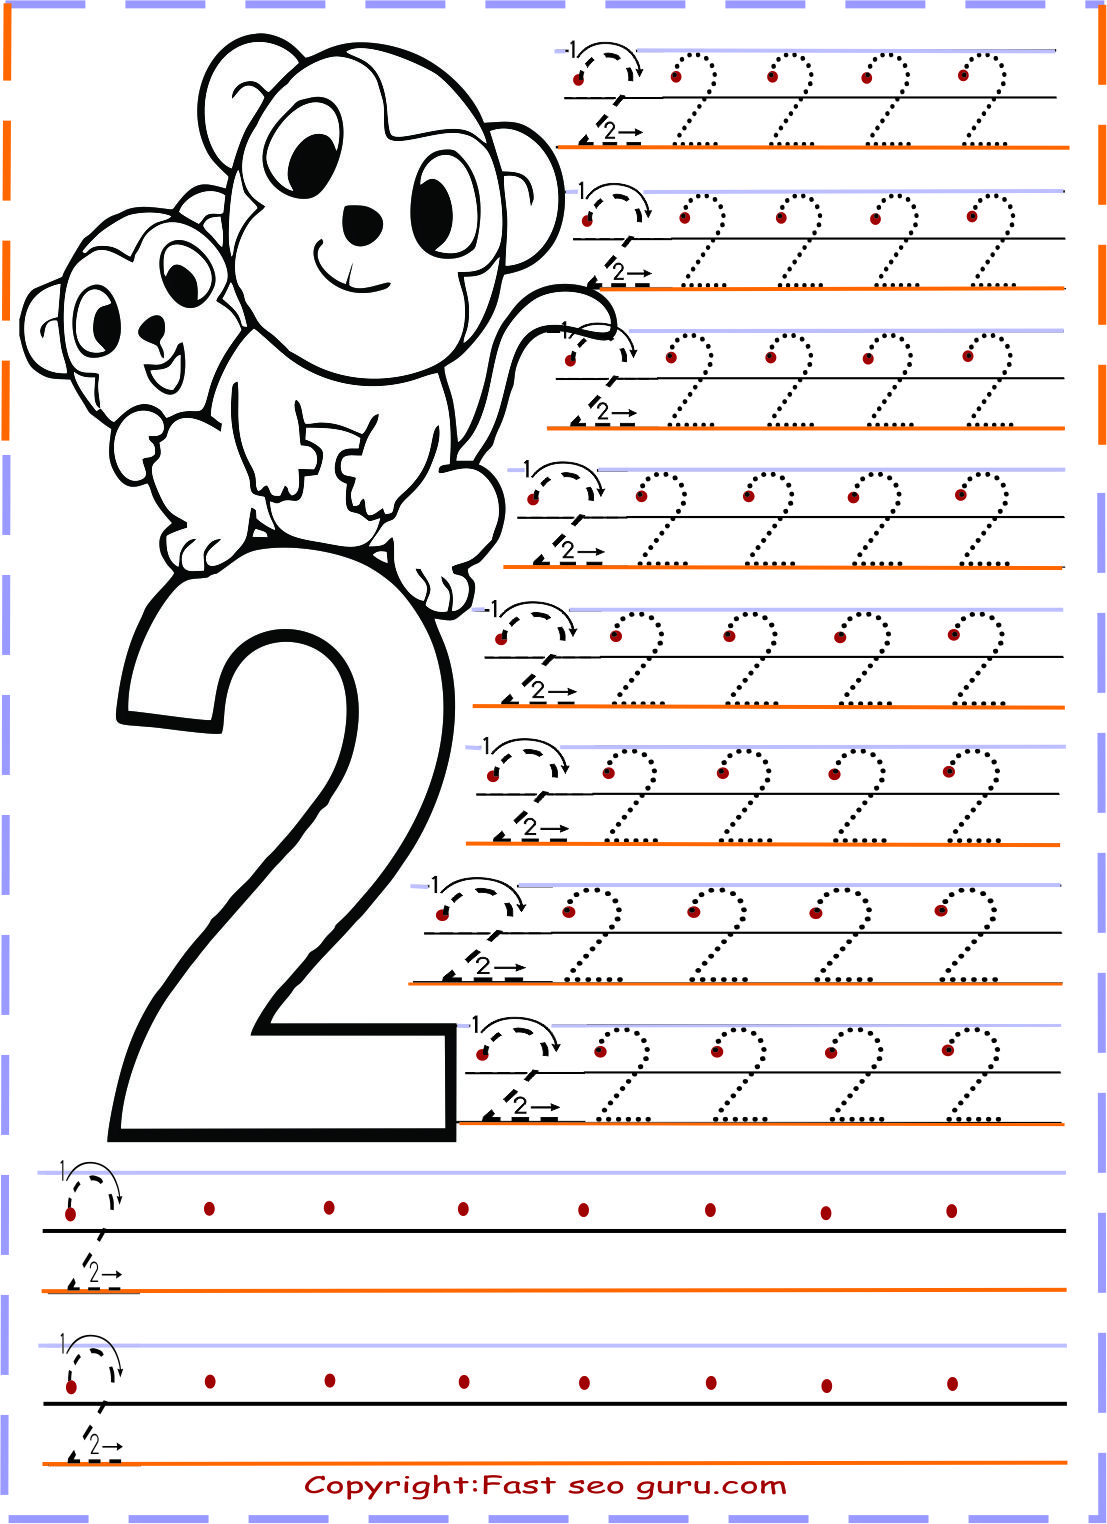 Printables Numbers Tracing Worksheets 2 For Kindergarten